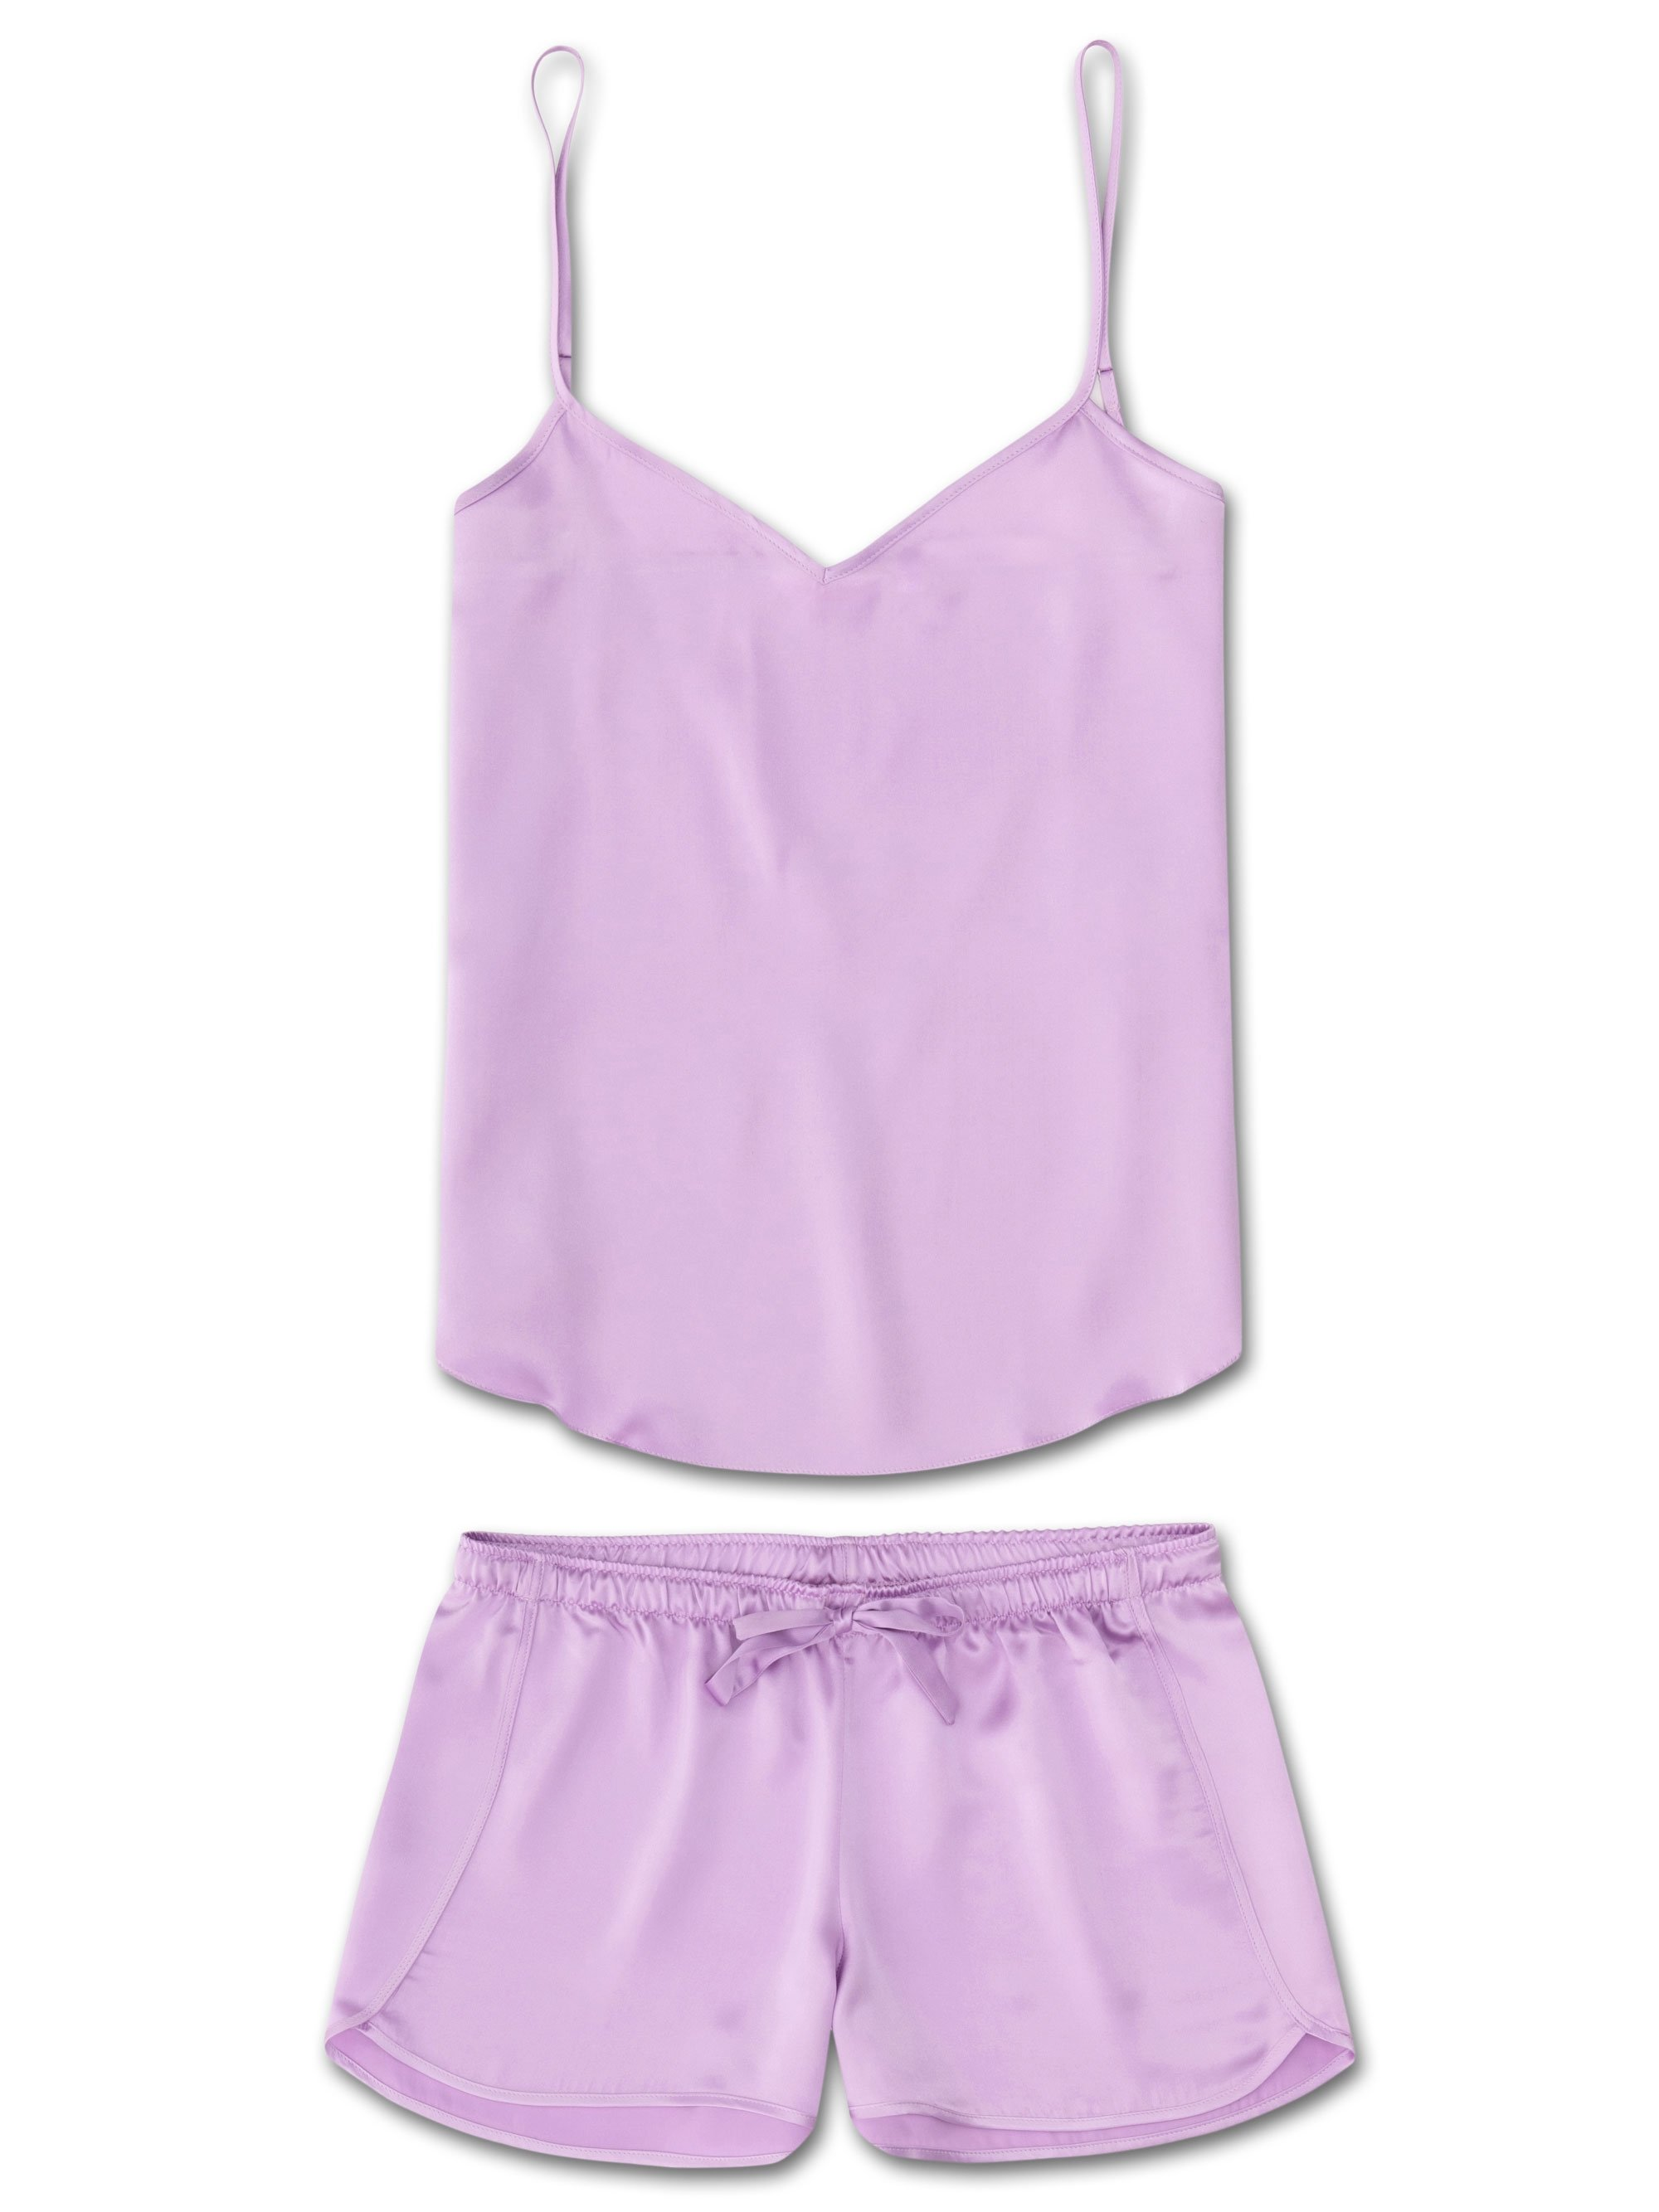 Women's Cami Short Pyjama Set Bailey Pure Silk Satin Lilac